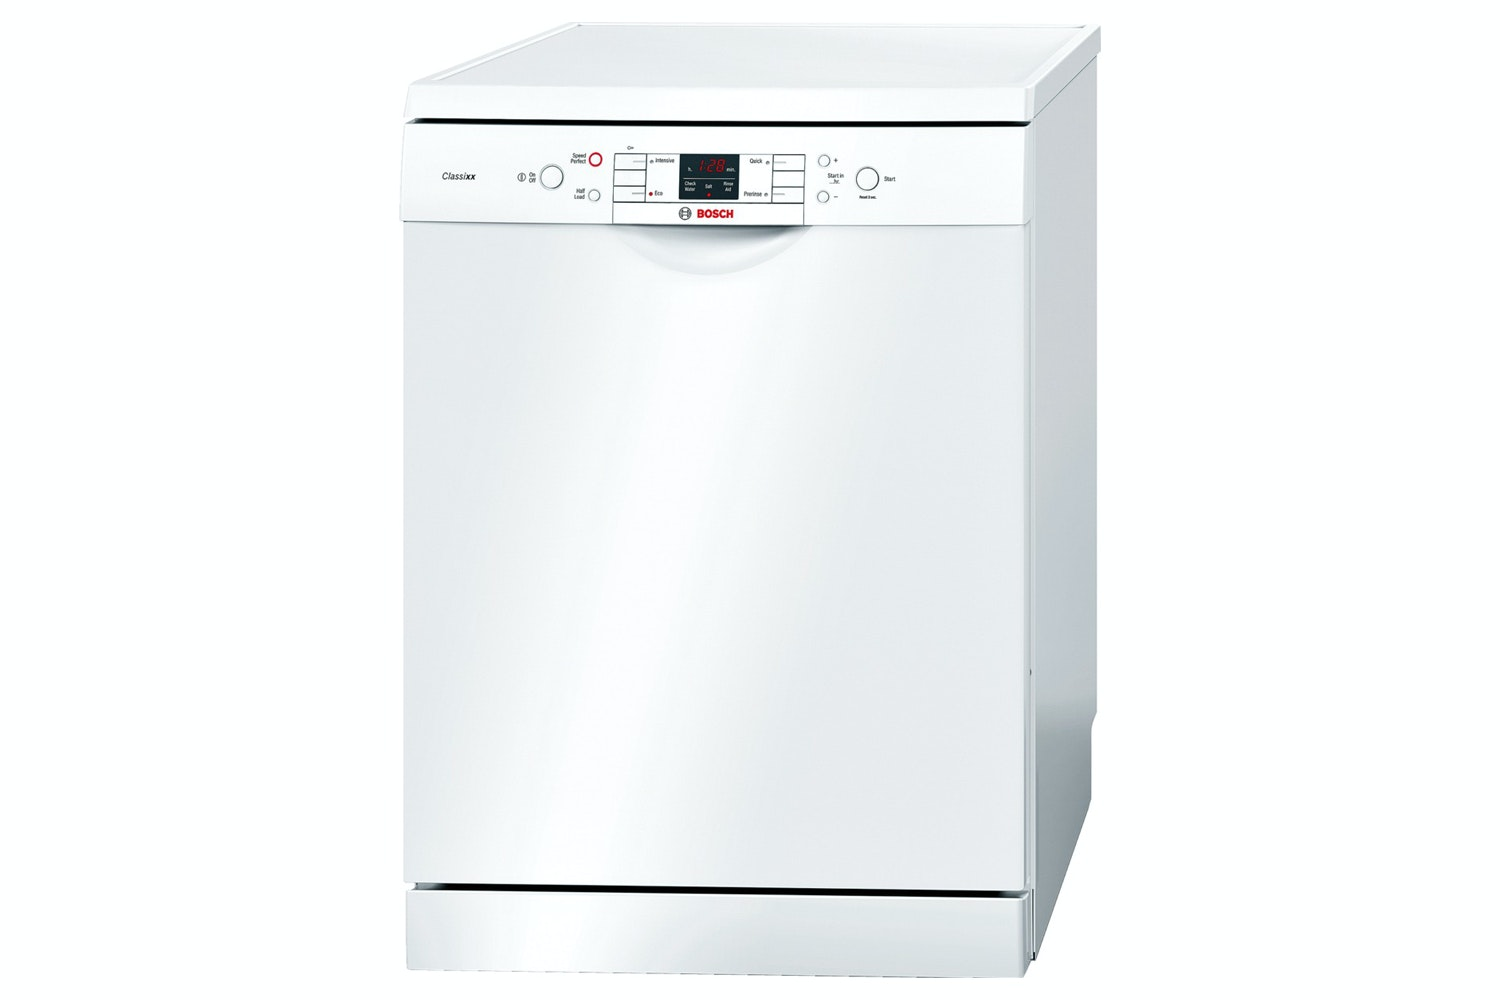 SMS40C12GB- dishwasher